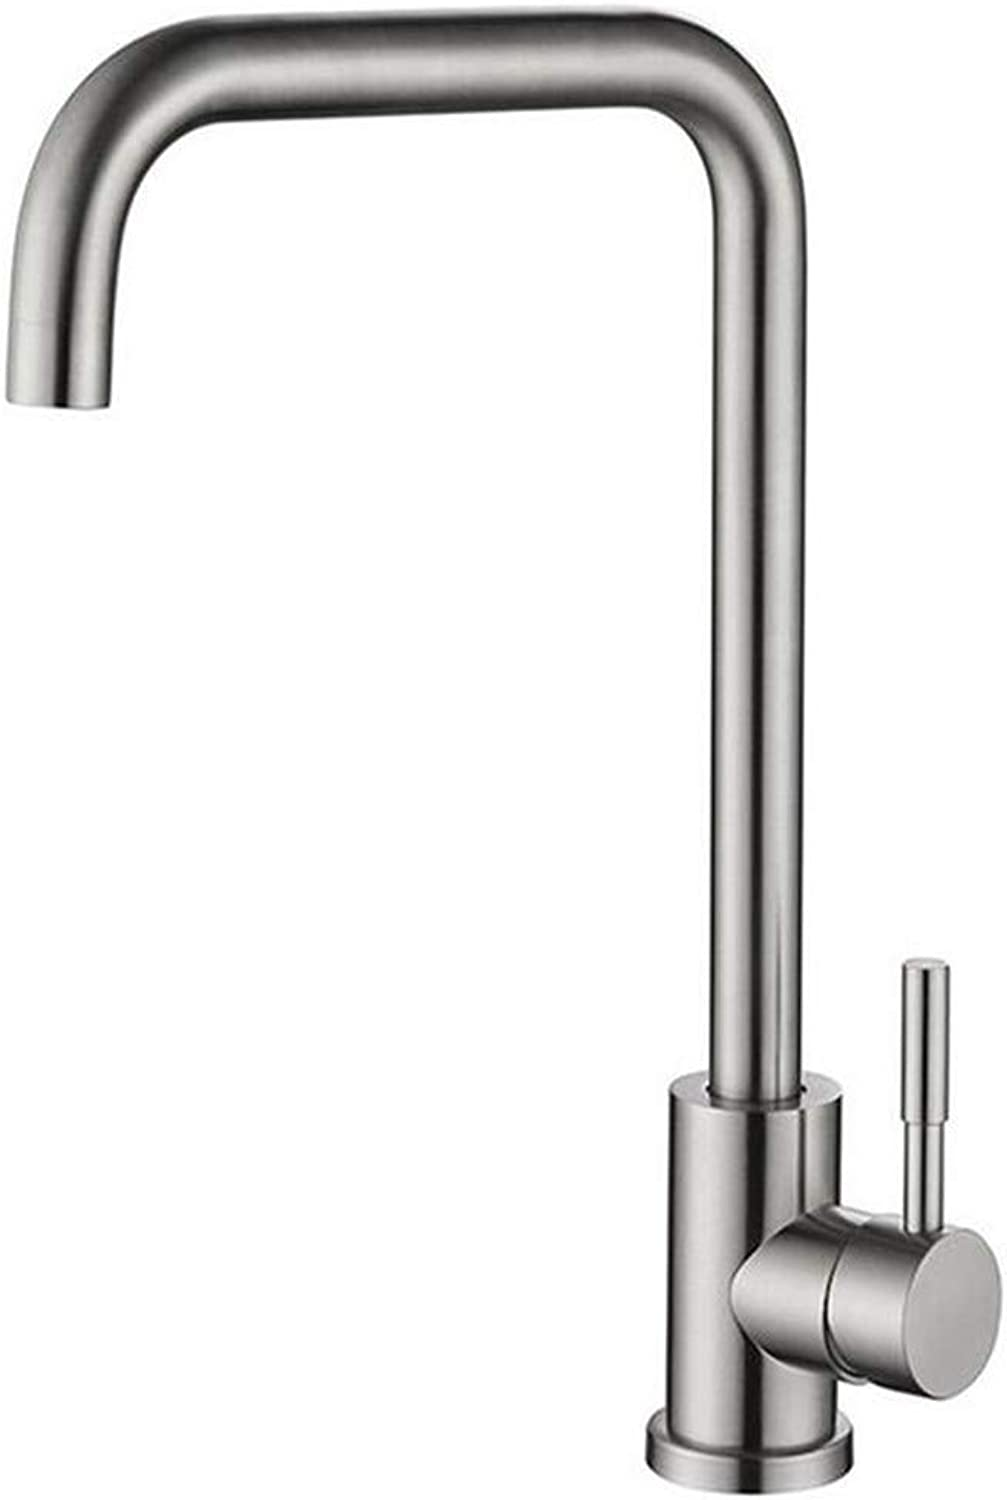 Faucet Luxury Modern Plated Mixer Faucet Stainless Steel Kitchen Bath Faucet